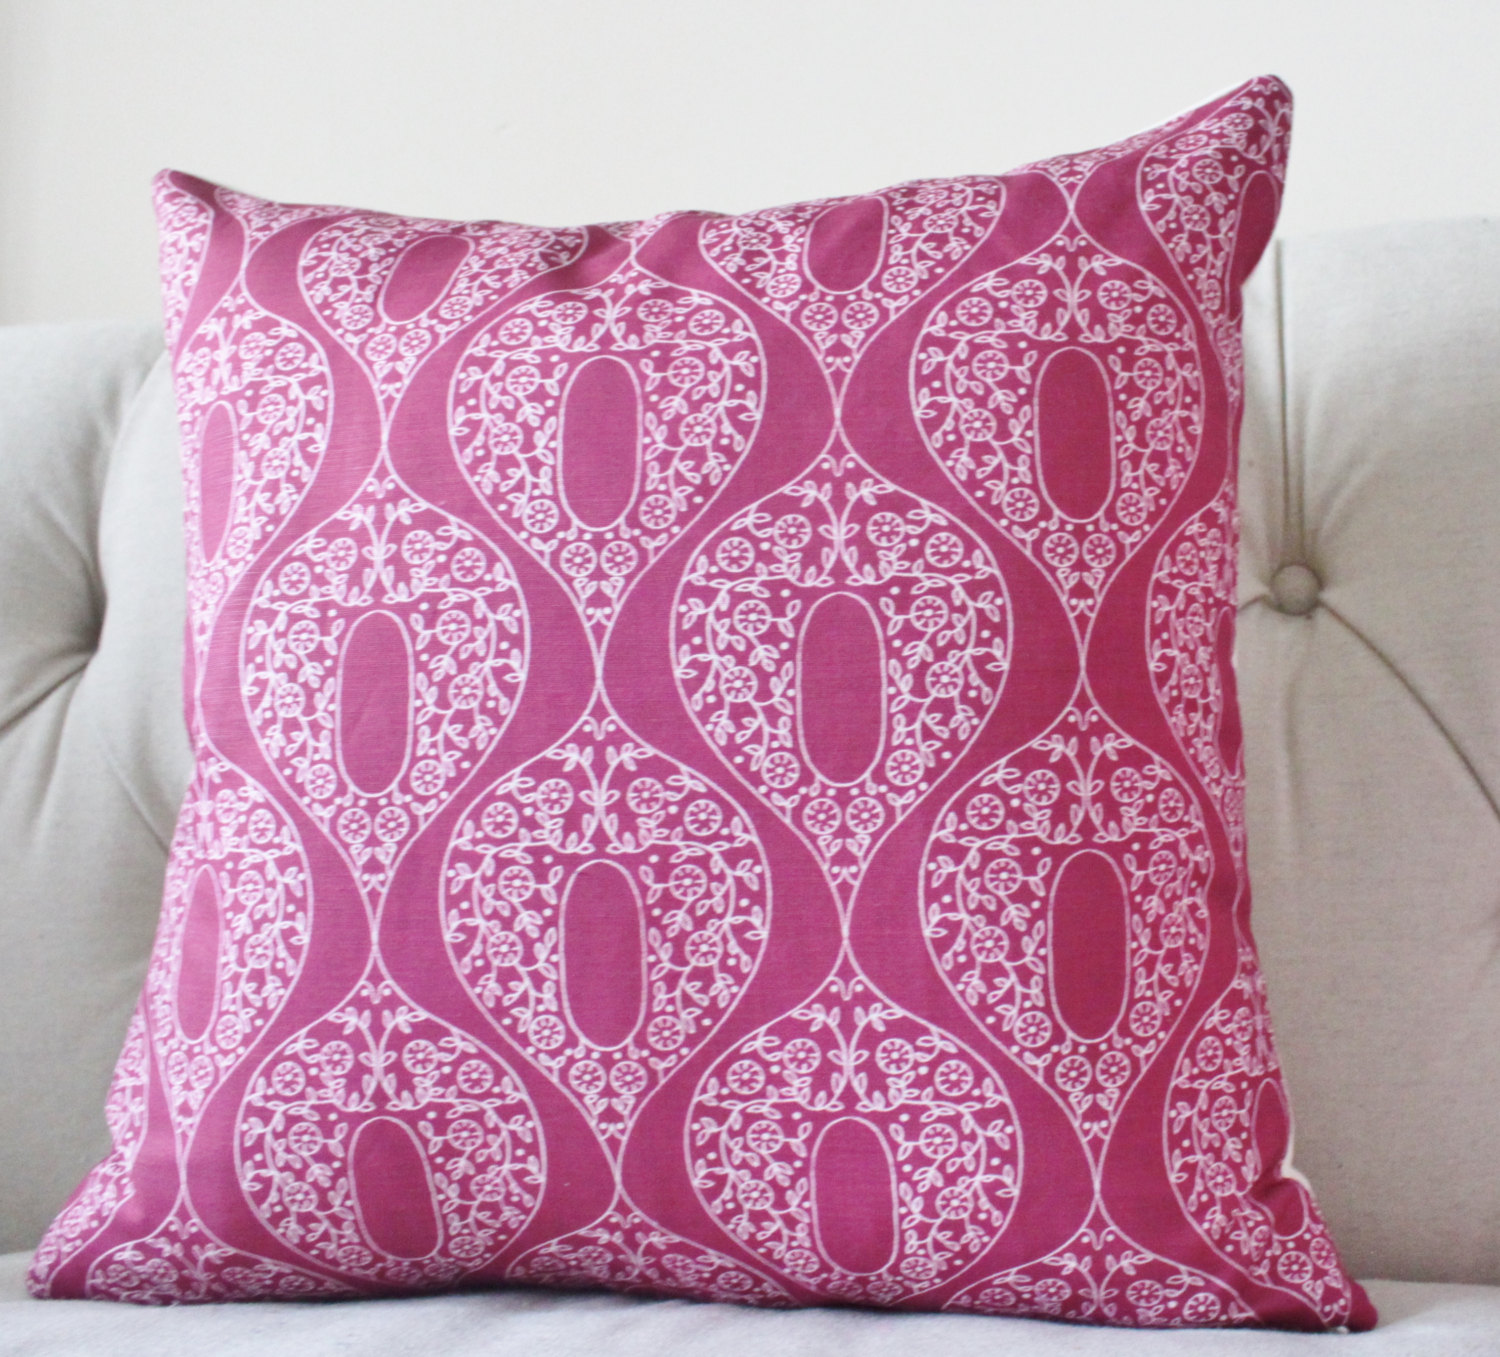 Lumbar Pillows Designs